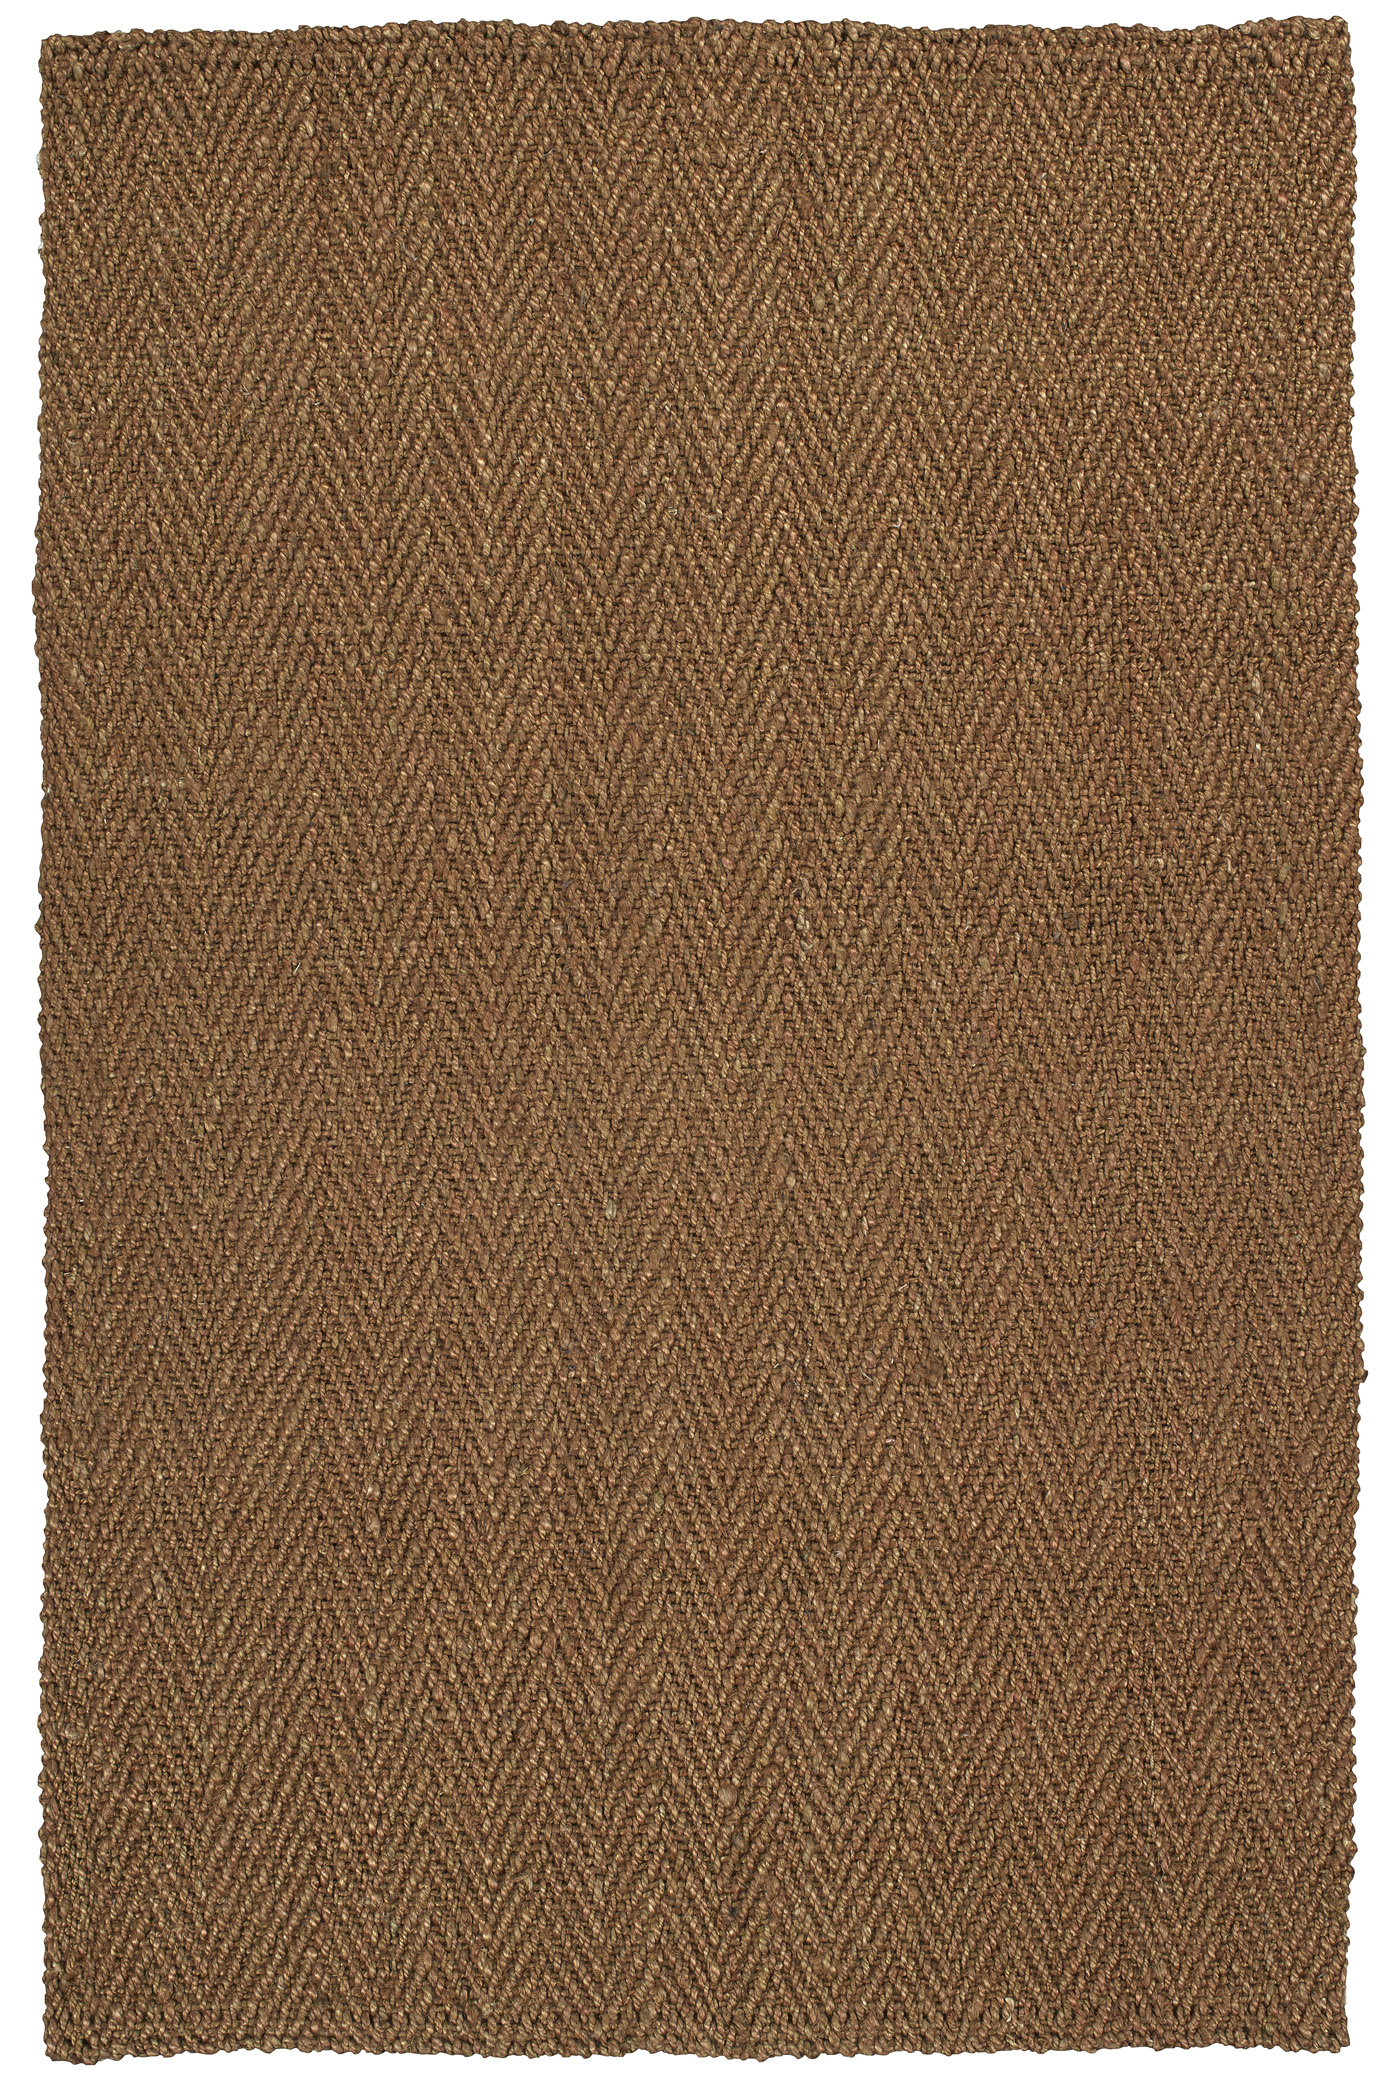 Kaleen Paloma PAL01-67 Copper Rug